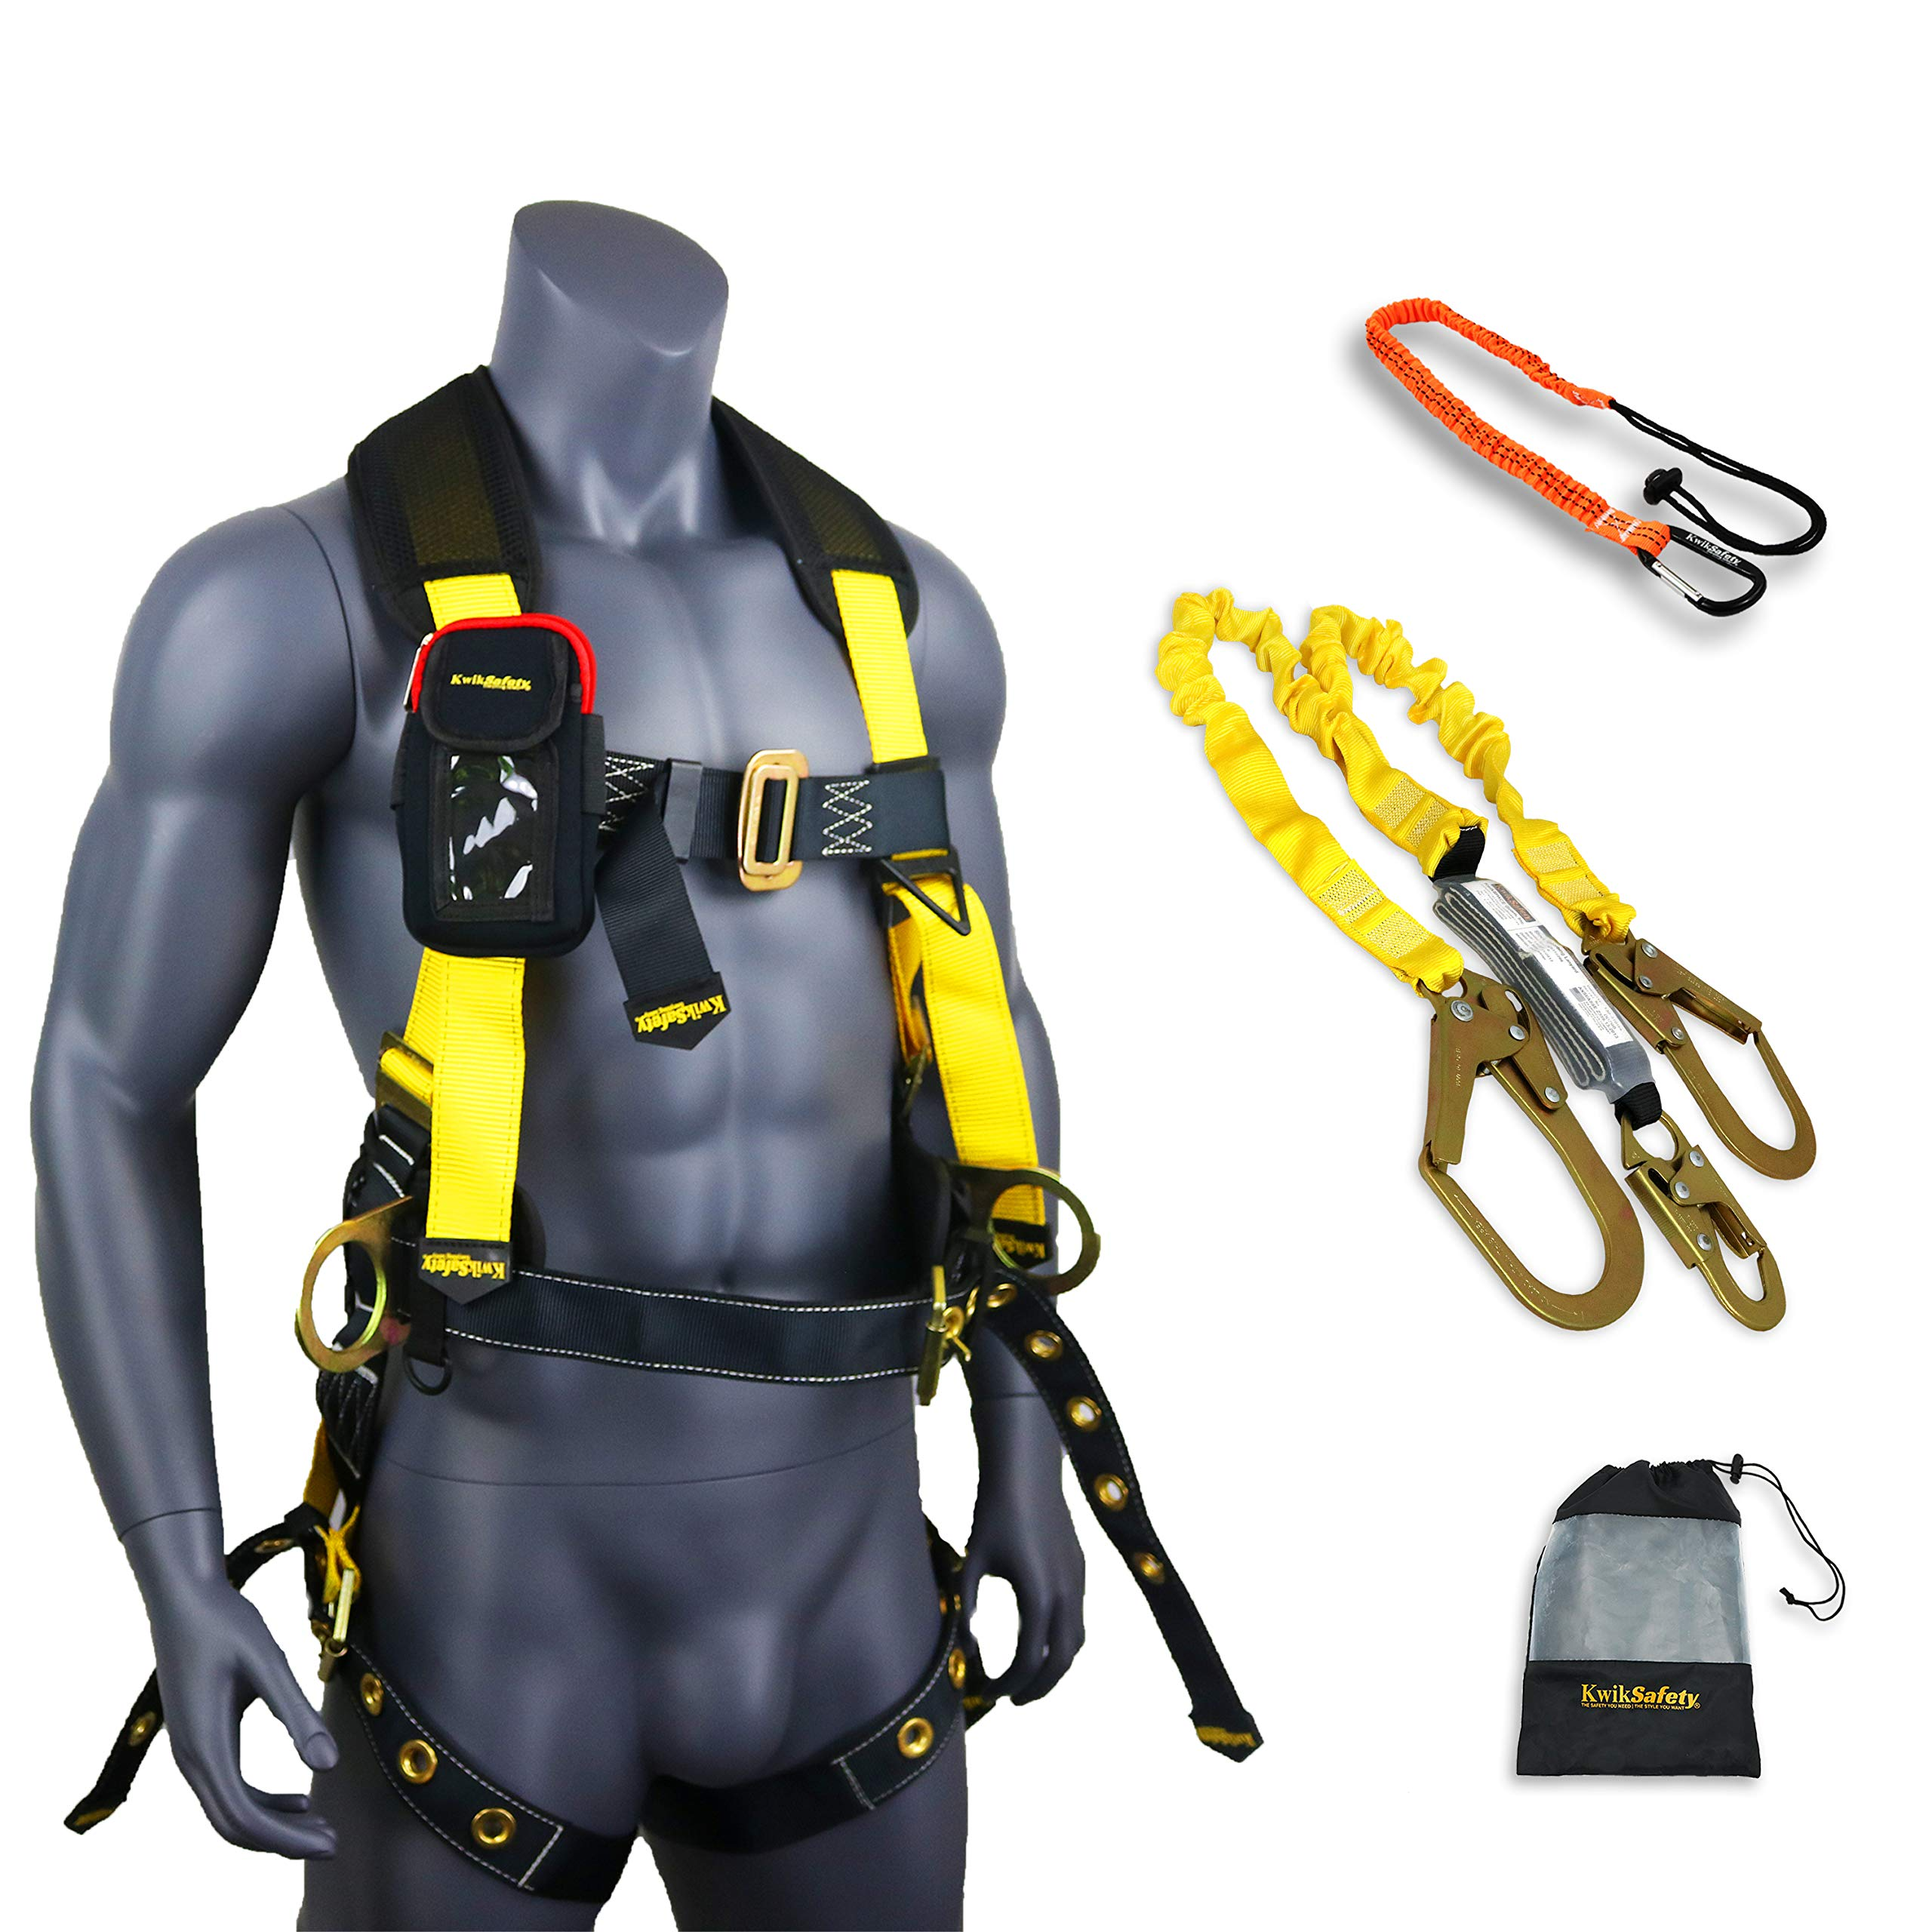 KwikSafety (Charlotte, NC) TYPHOON COMBO | 3D Full Body Tongue Buckle w/Back Support Safety Harness, Bolt Pouch, 6' Lanyard, Tool Strap, ANSI PPE Fall Protection Equipment Construction Bucket by KwikSafety (Image #1)